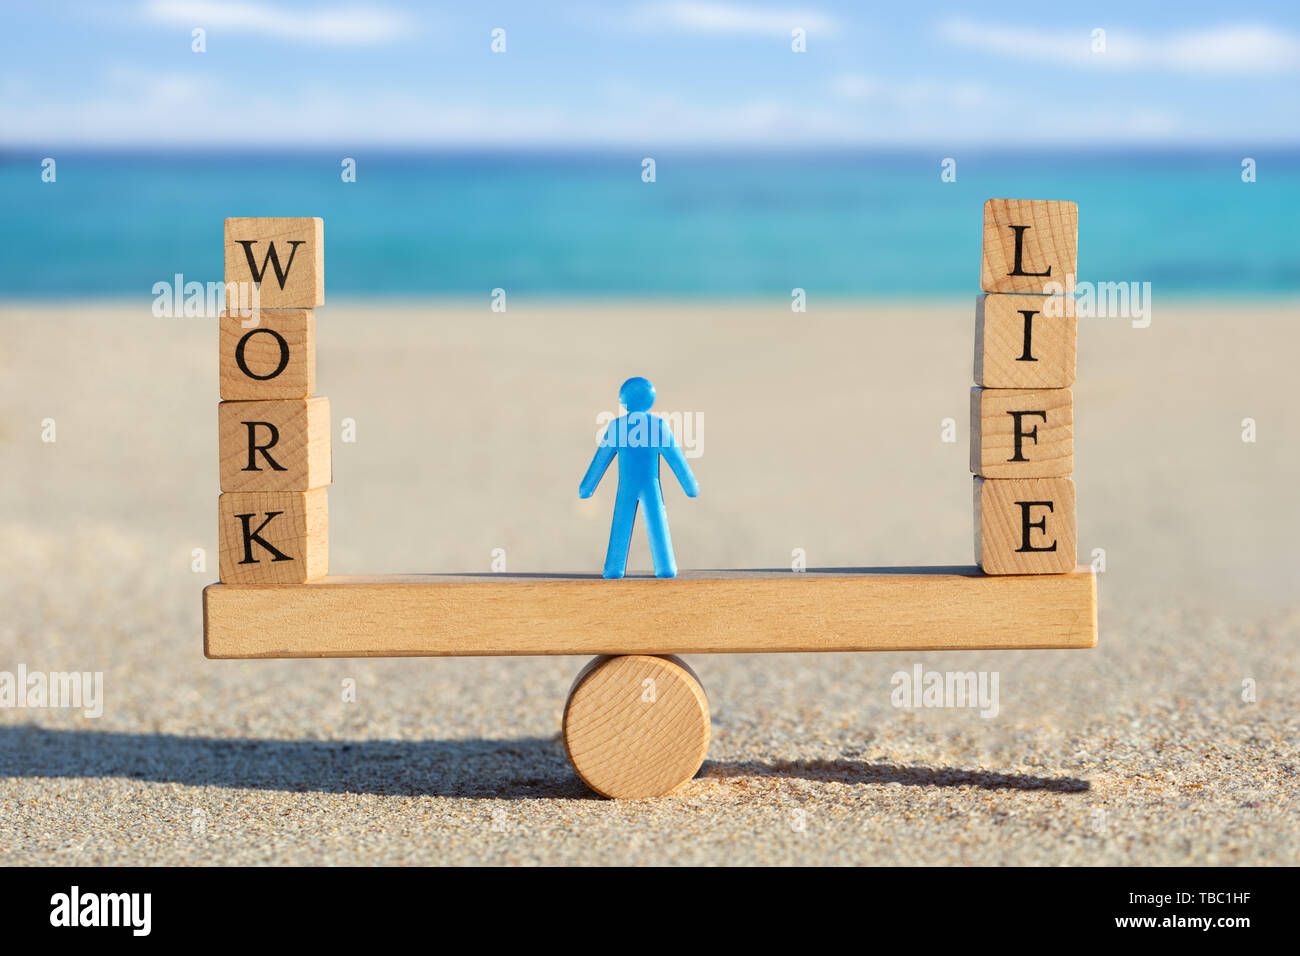 Blue Human Figure Standing Between The Work And Life Blocks Balancing On Seesaw At Beach - Stock Image